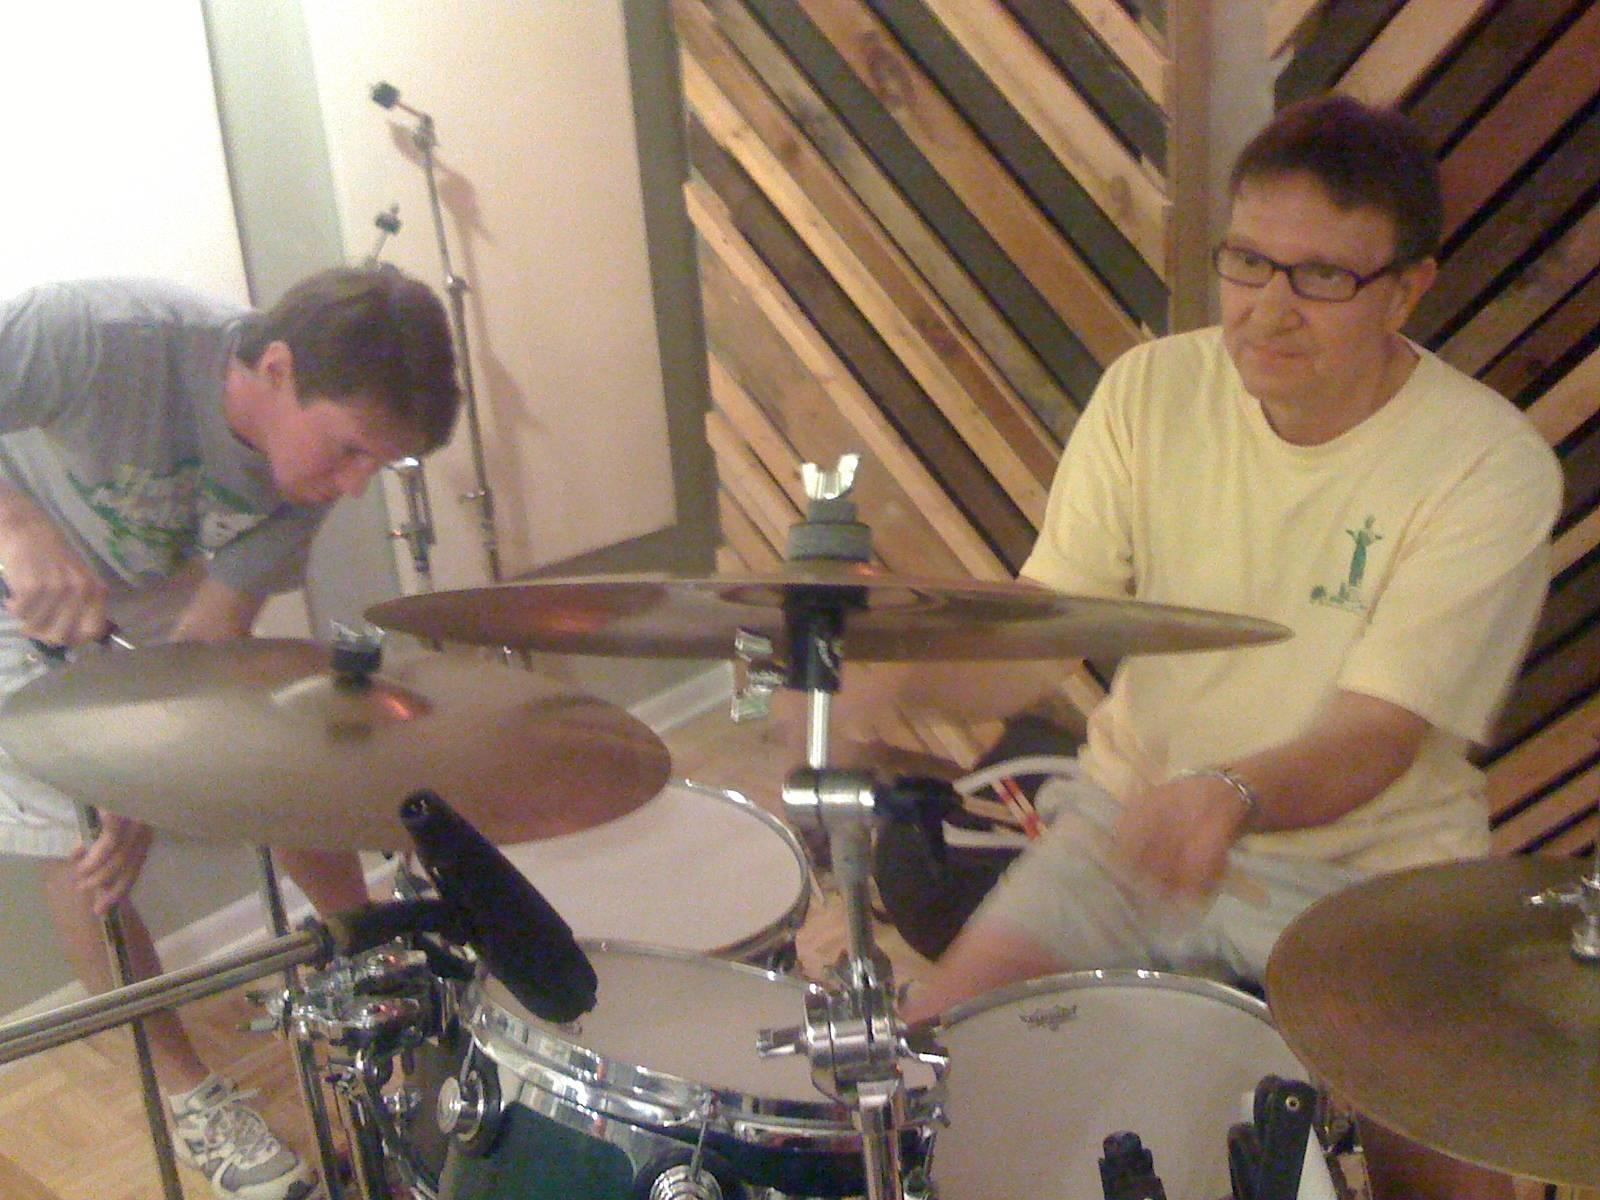 Miking the Drums